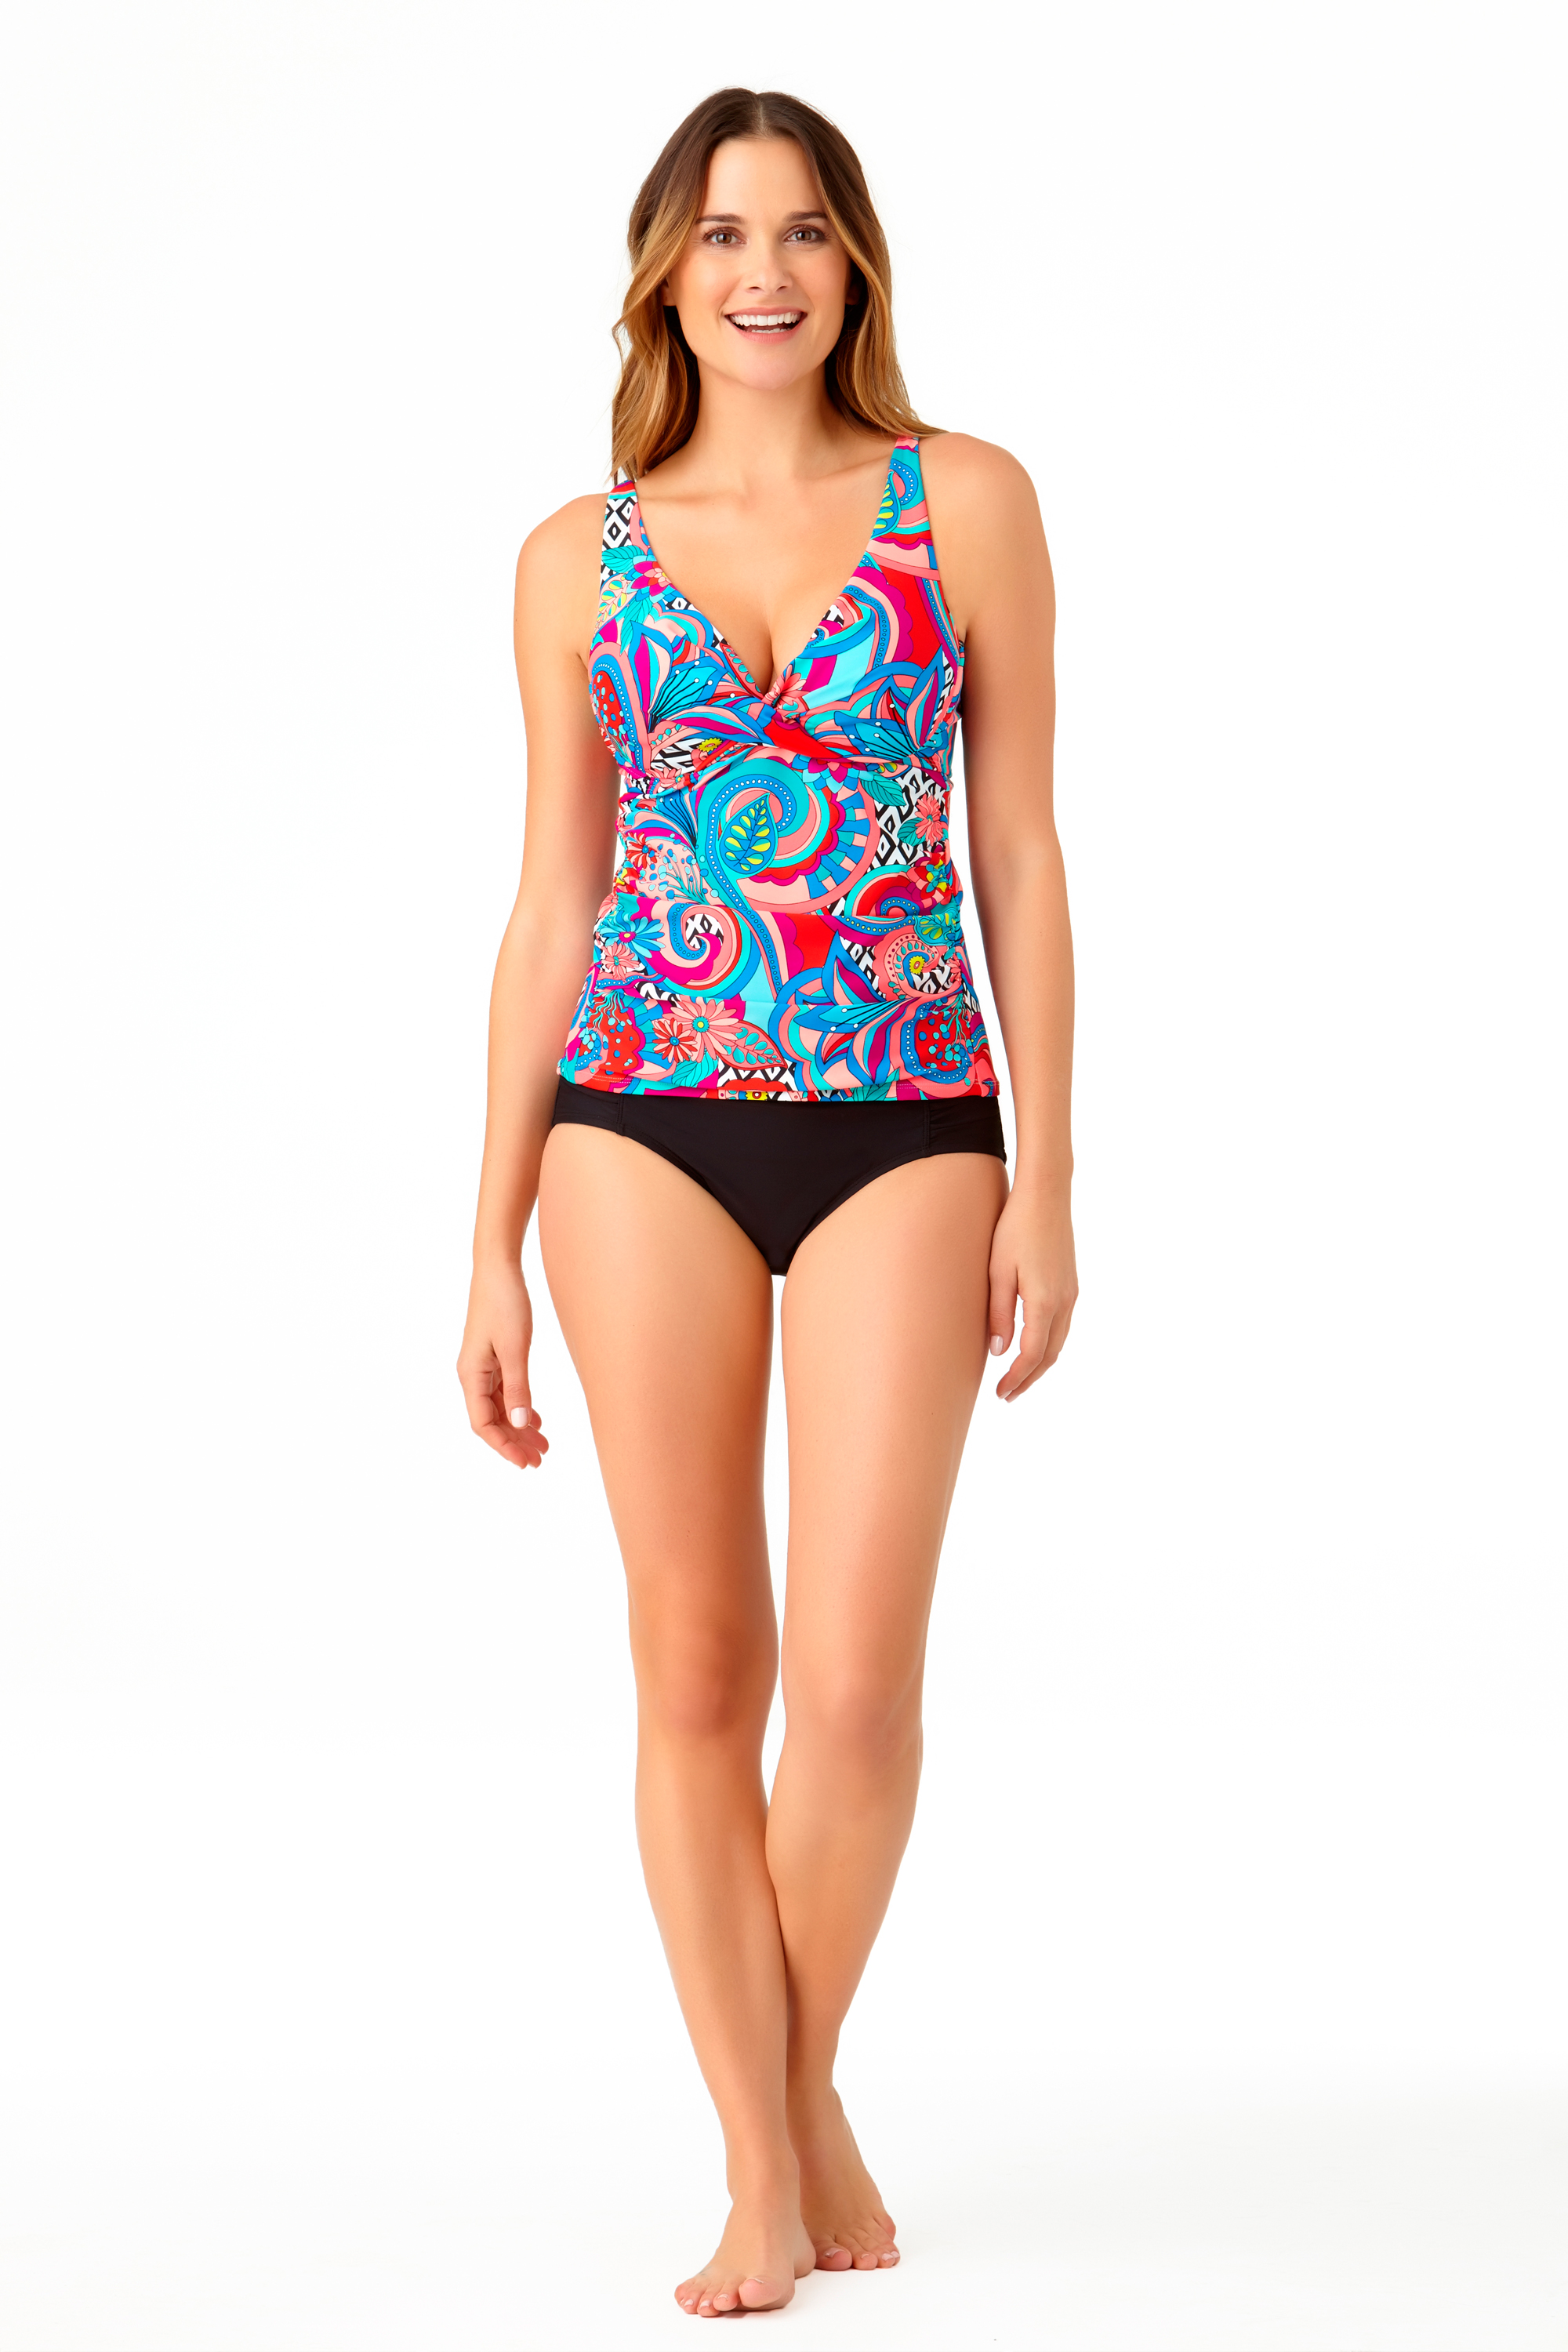 STYLE # CTL27414T / CTL27500B - Copacabana Tankini TopSOLD OUTSolid High Waist BottomSOLD OUT